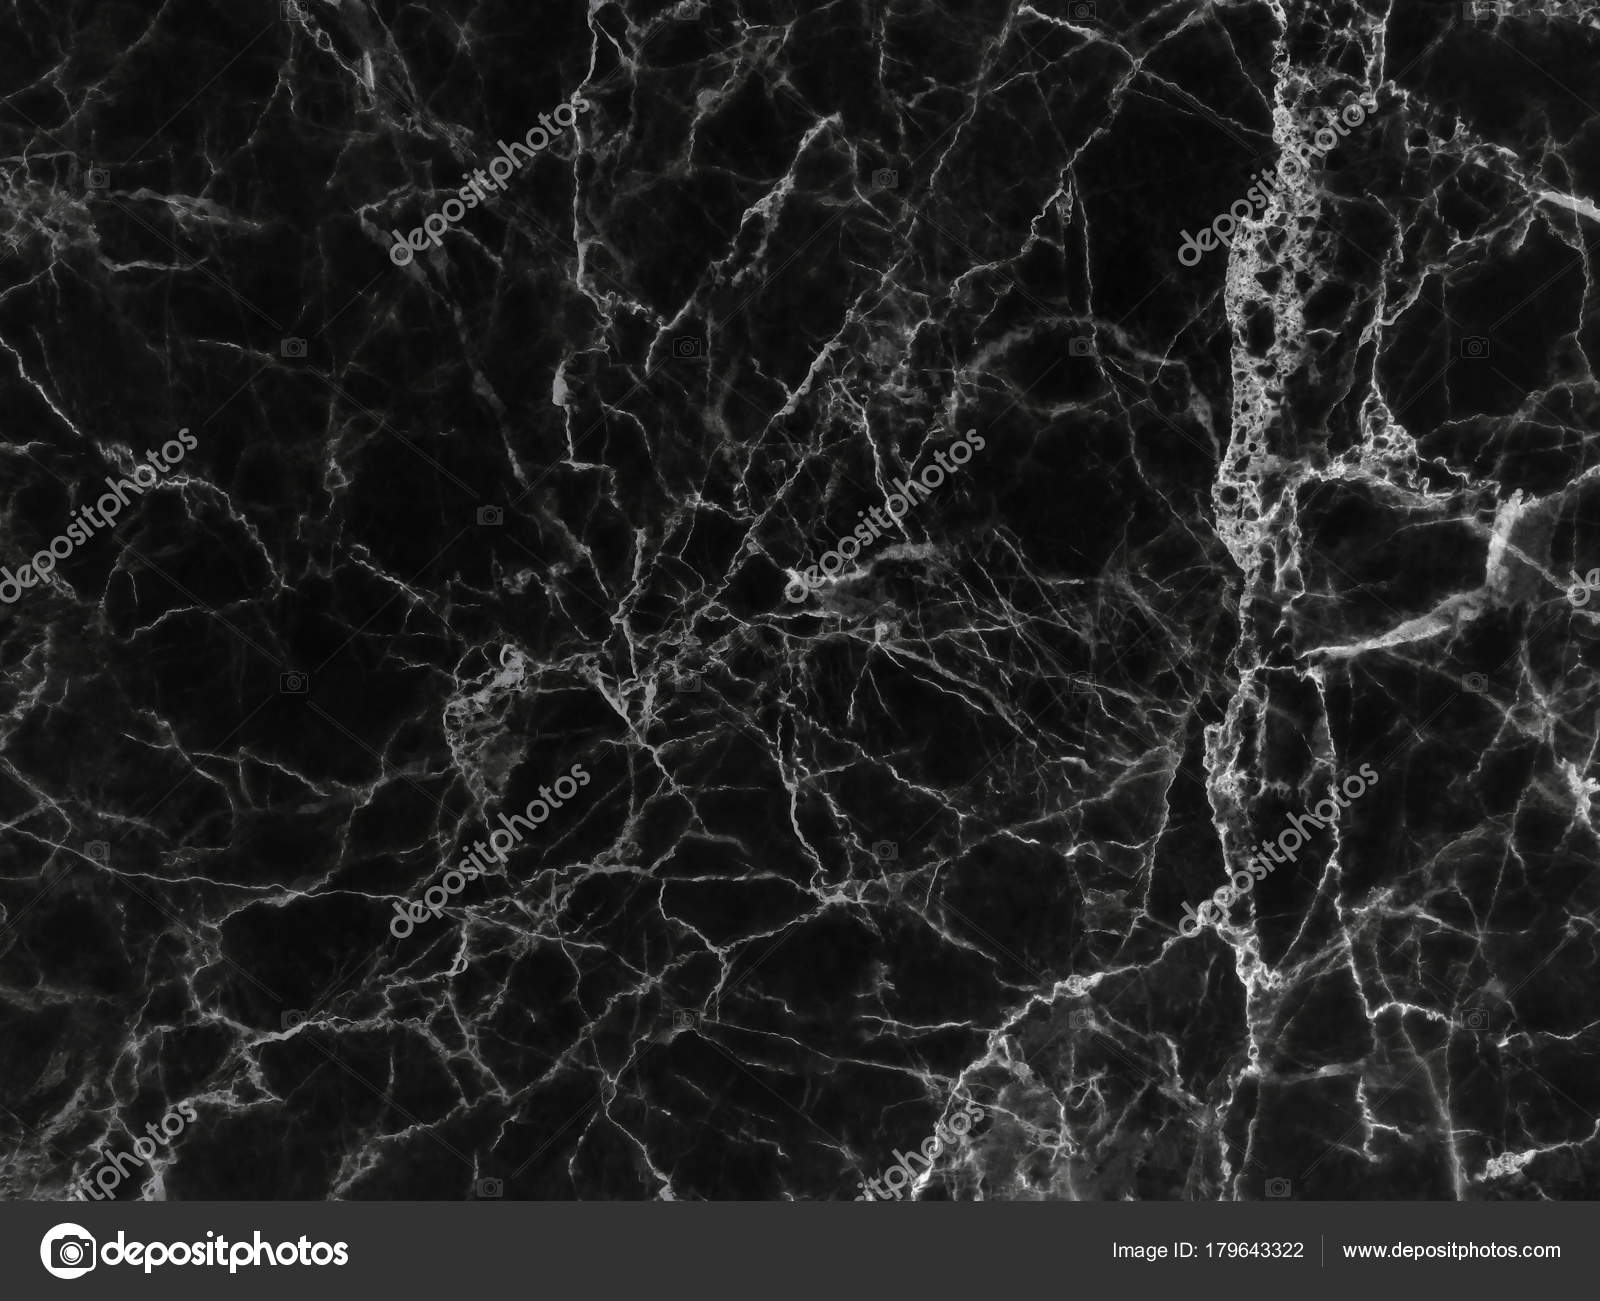 Black Marble Texture And Background Stock Photo C Jpkirakun 179643322